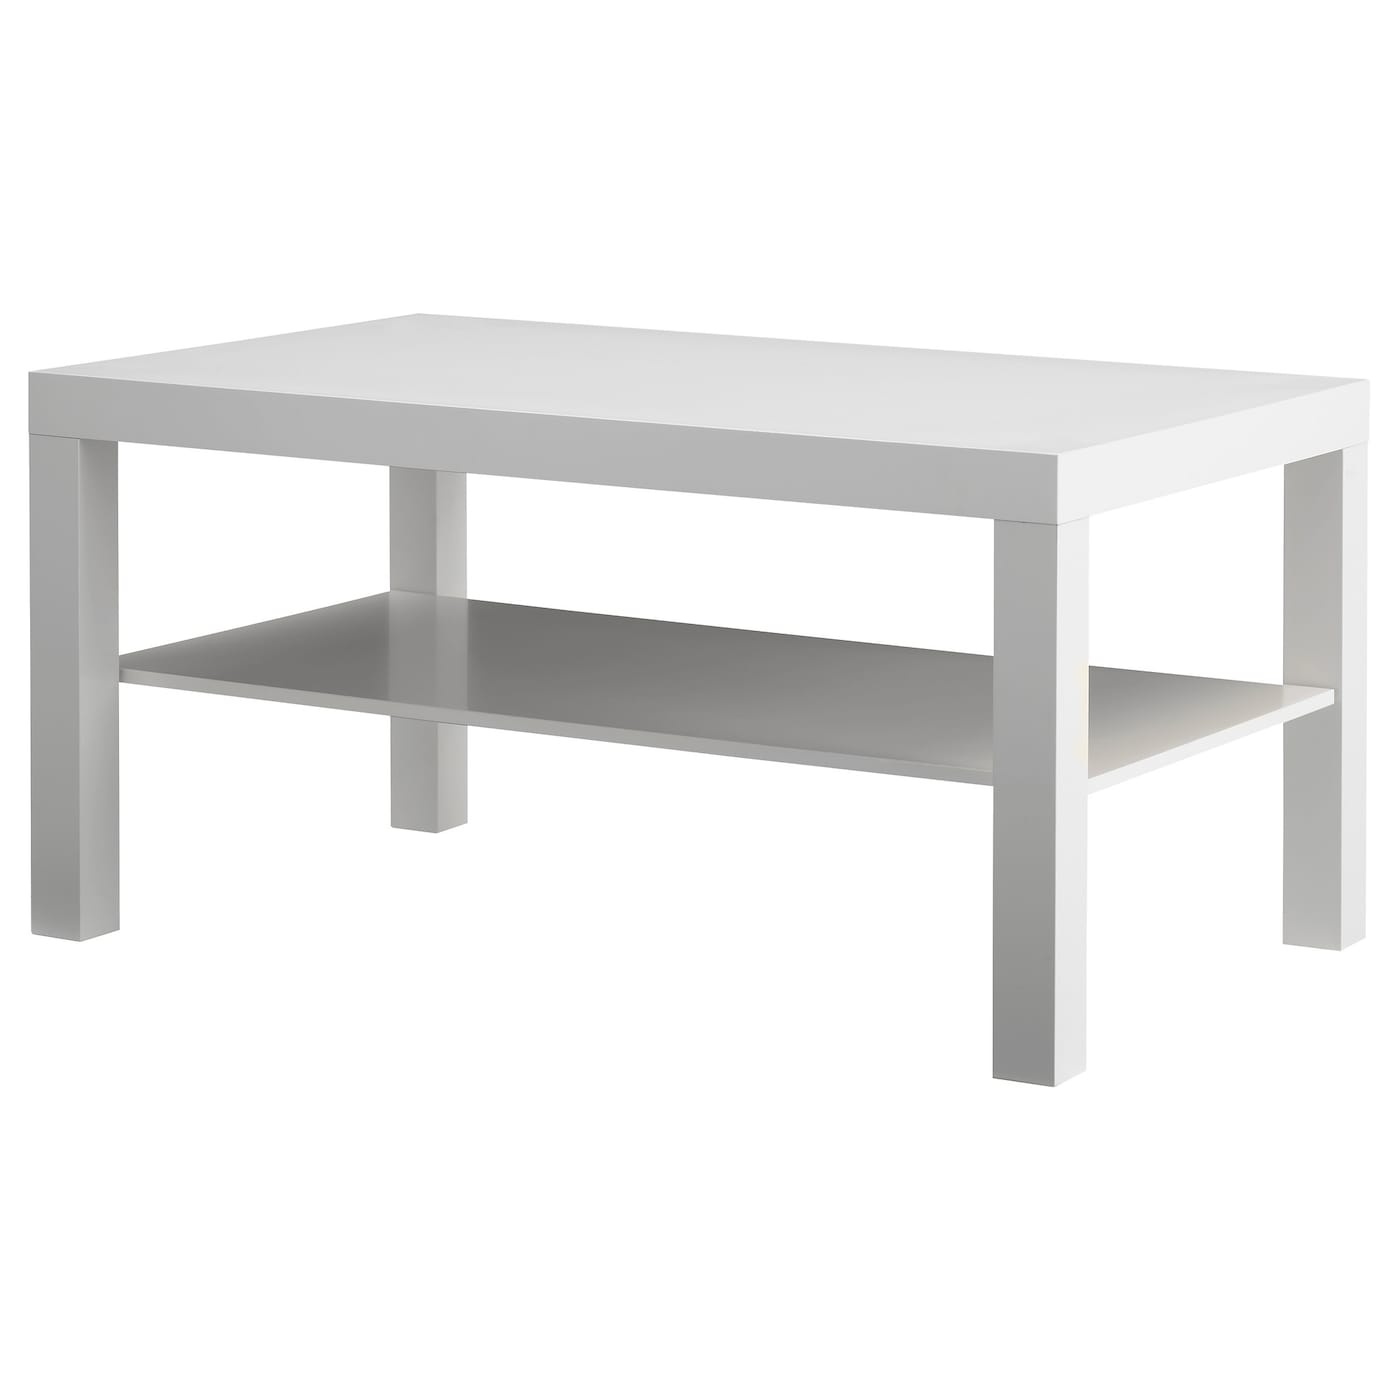 lack coffee table white 90x55 cm ikea. Black Bedroom Furniture Sets. Home Design Ideas